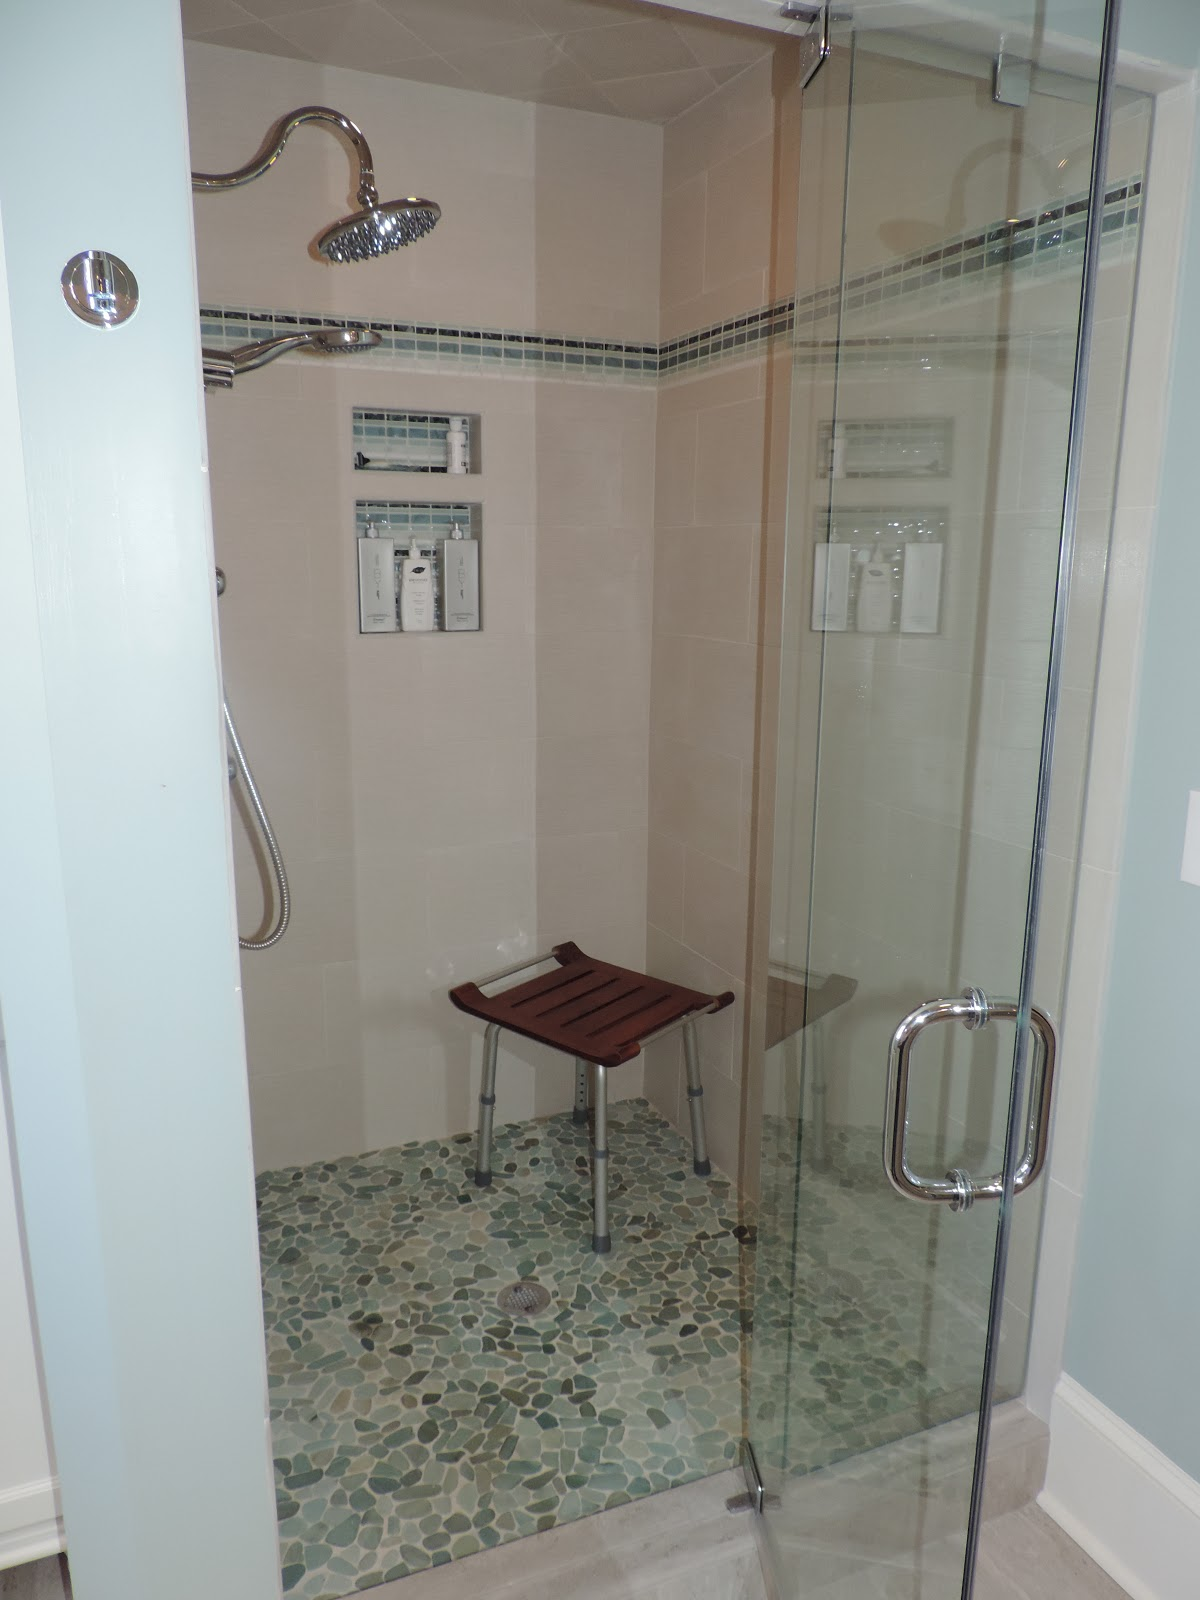 New Tile tops cabinets and plumbing We added a custom linen cabinet where the bidet used to be